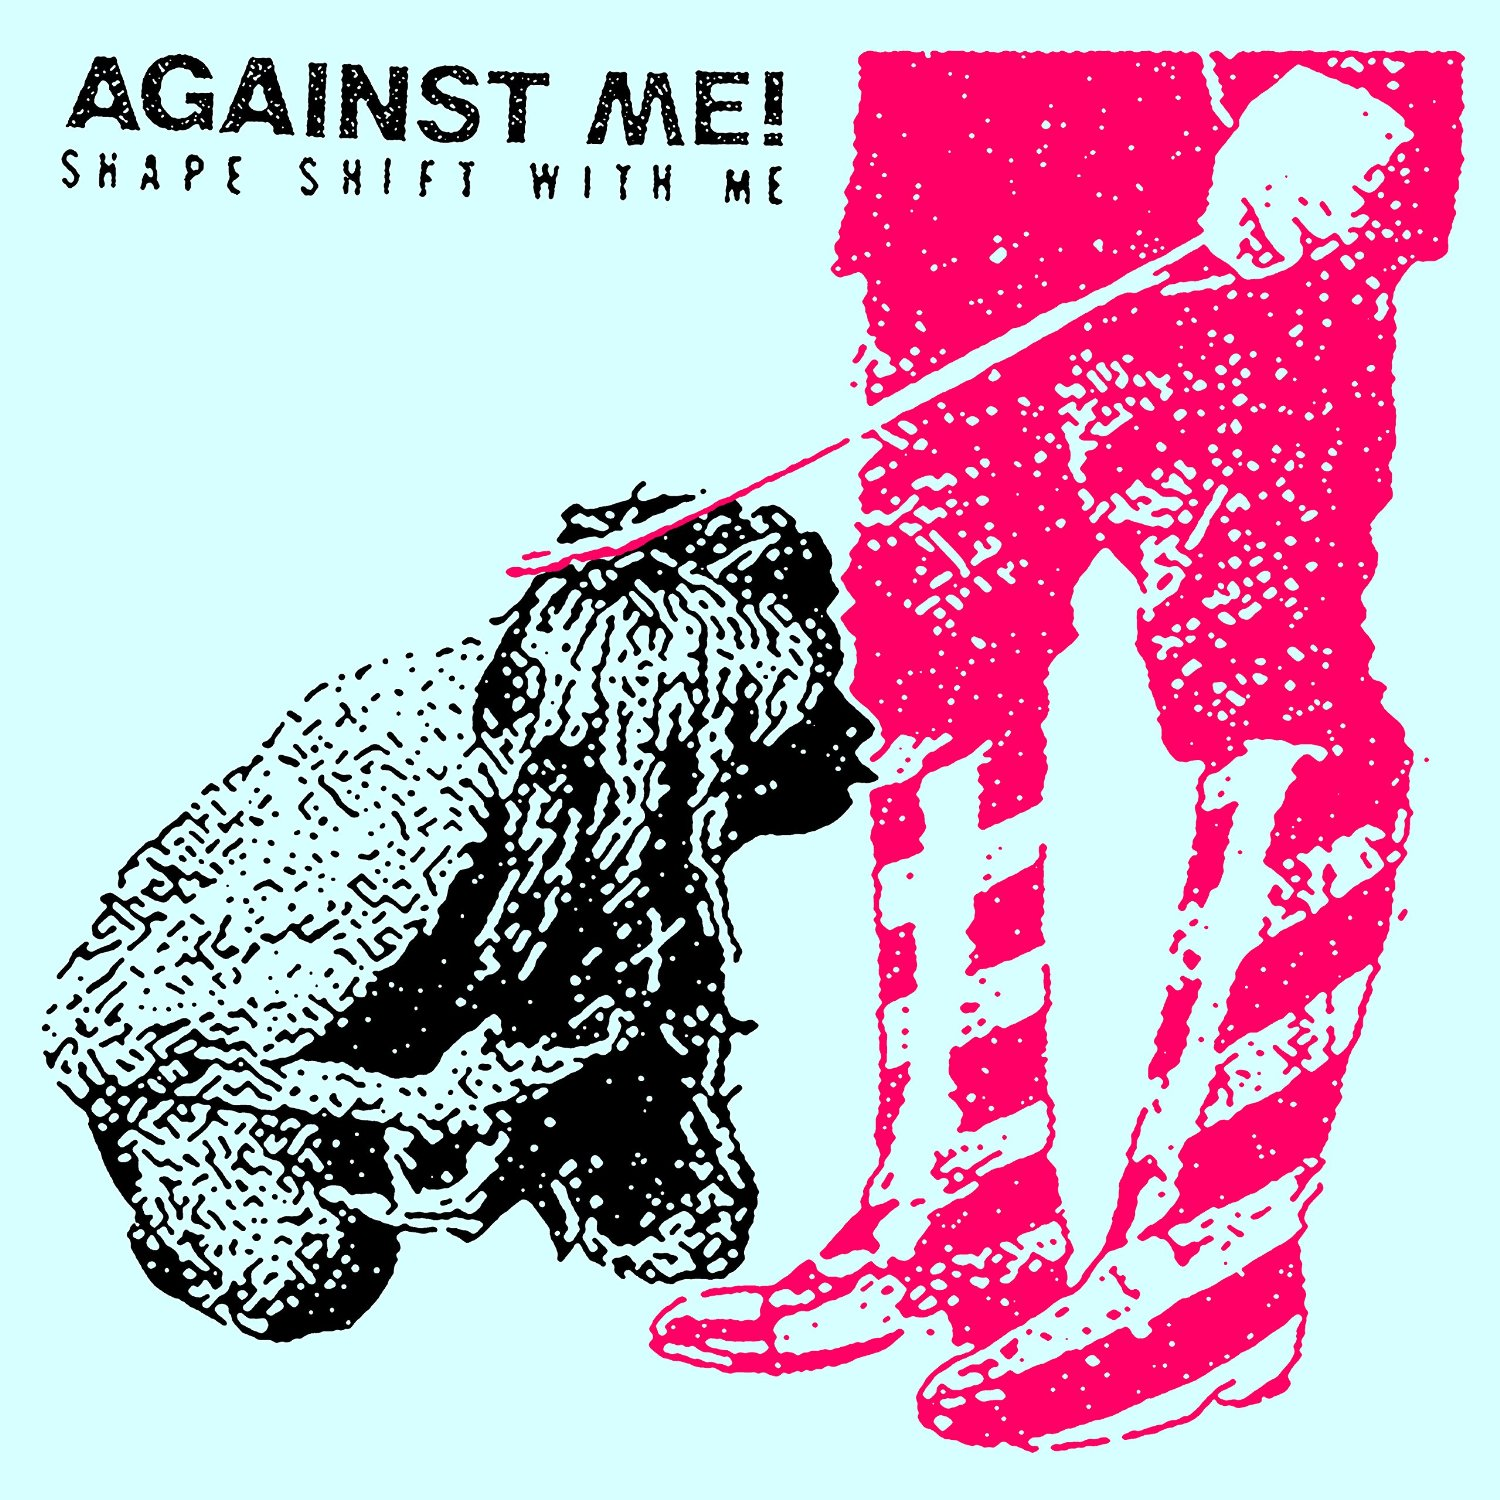 Against Me!, Shape Shift with Me